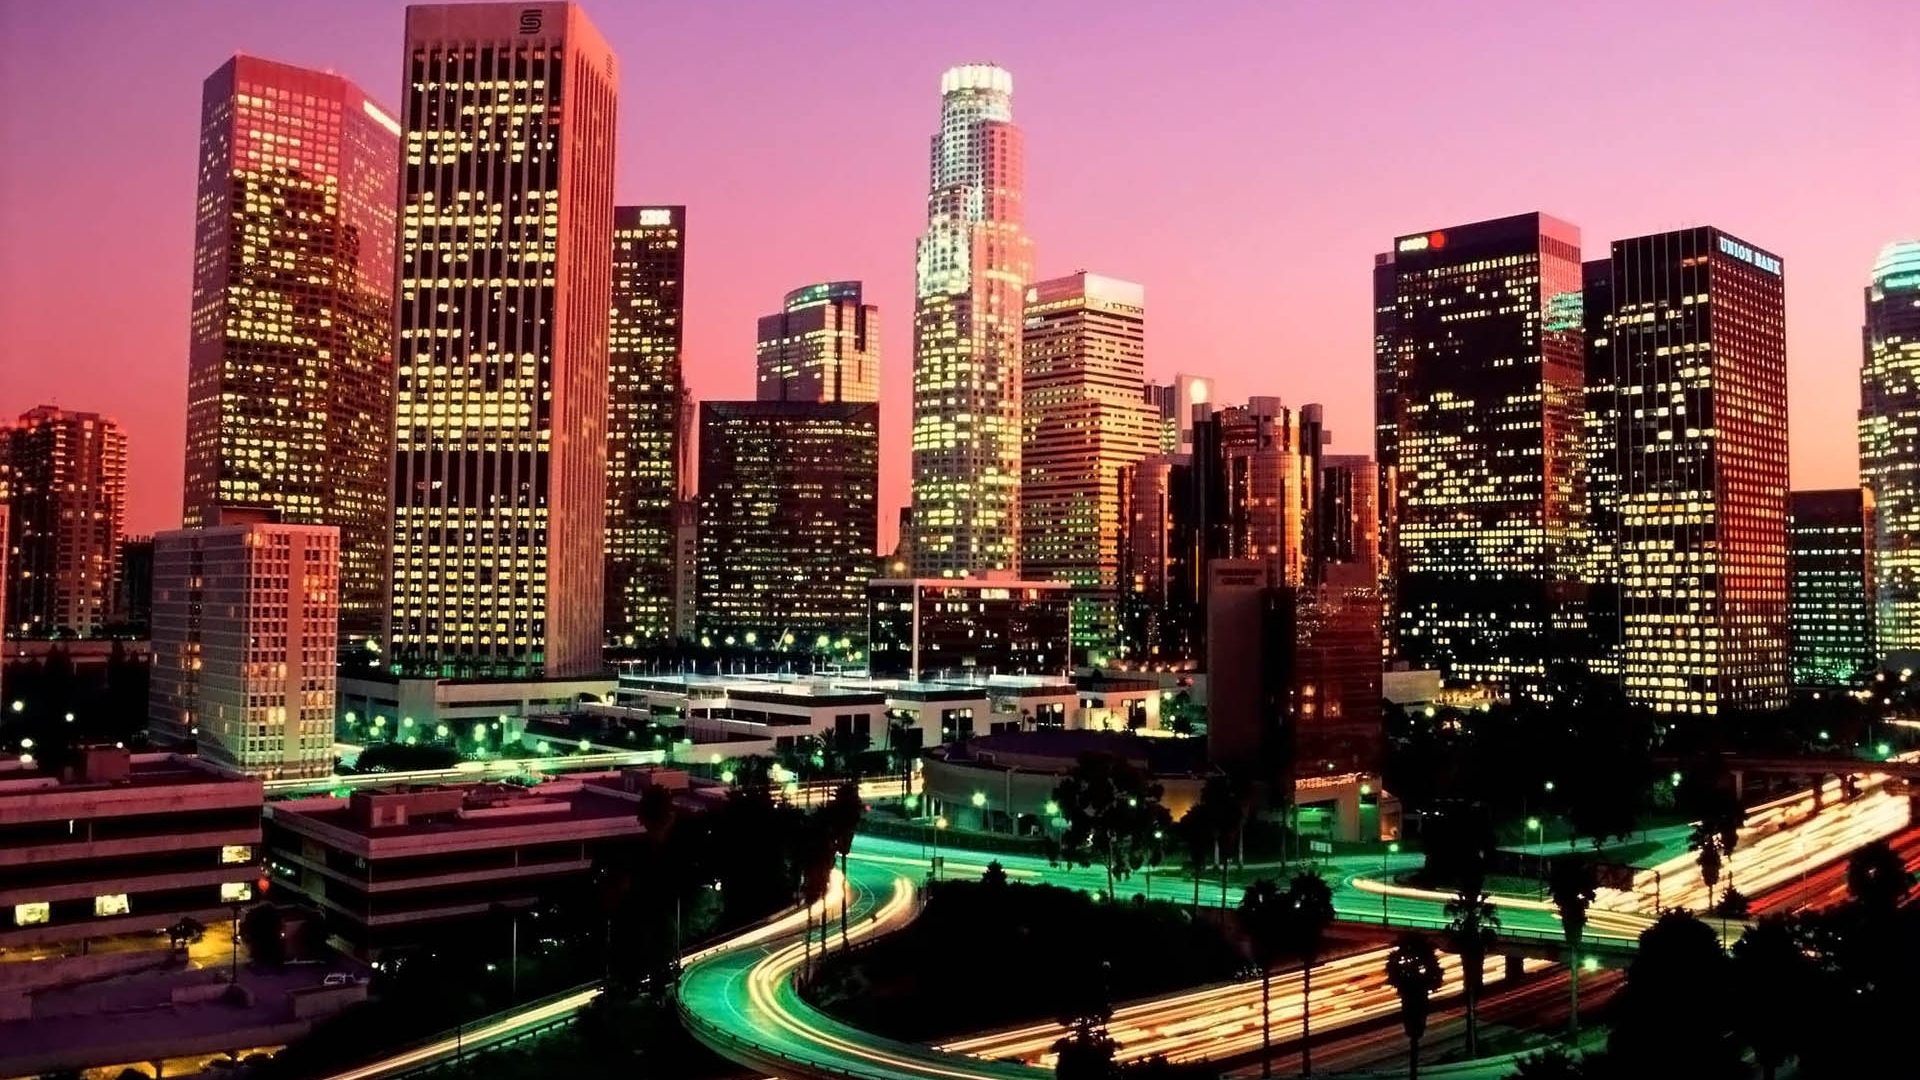 Must see Wallpaper Macbook Los Angeles - la-wallpaper-10  You Should Have_297261.jpg